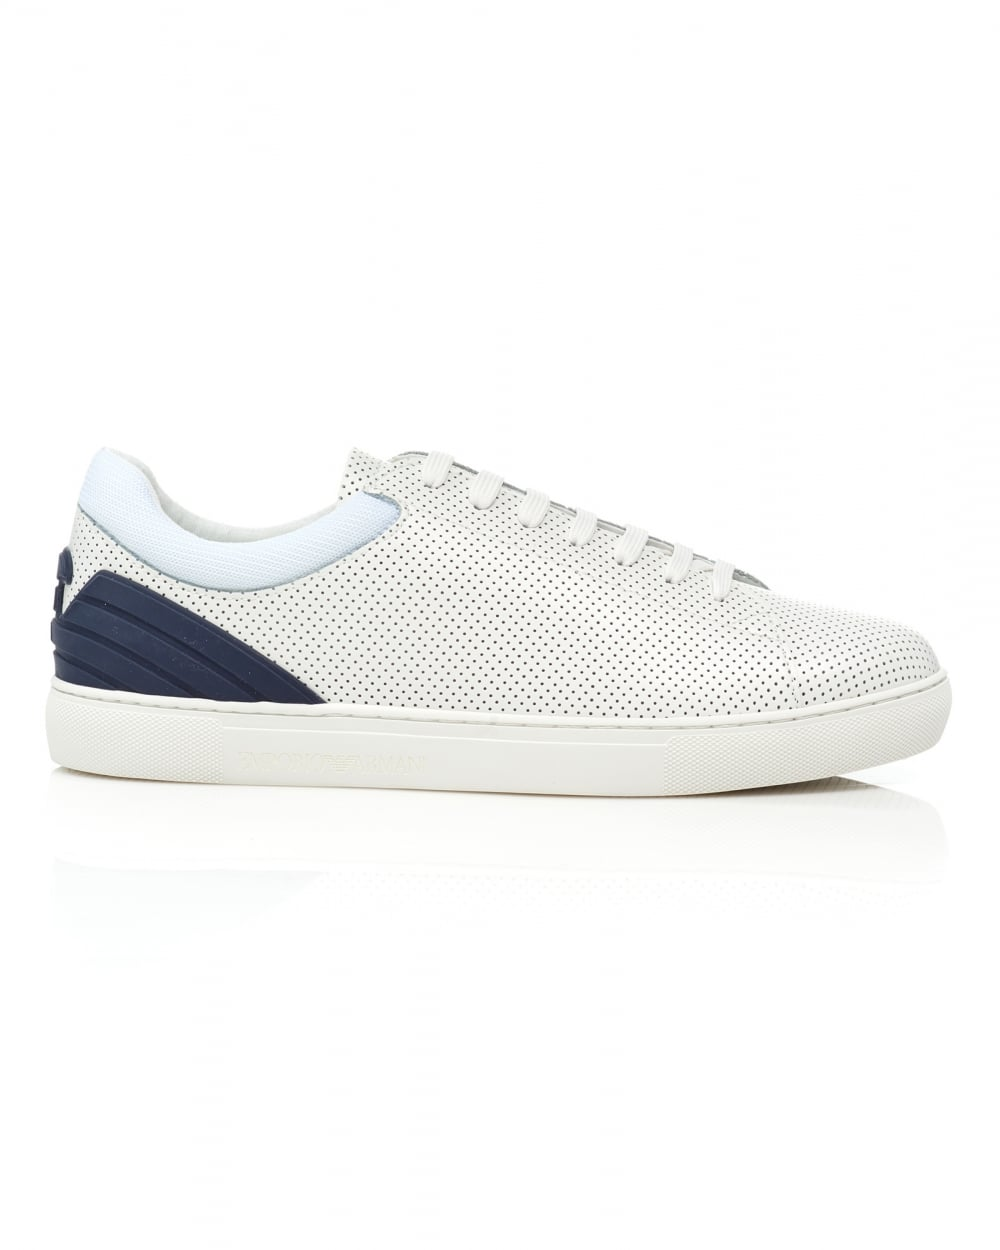 66b6a0ca767b Emporio Armani Mens Perforated Trainers